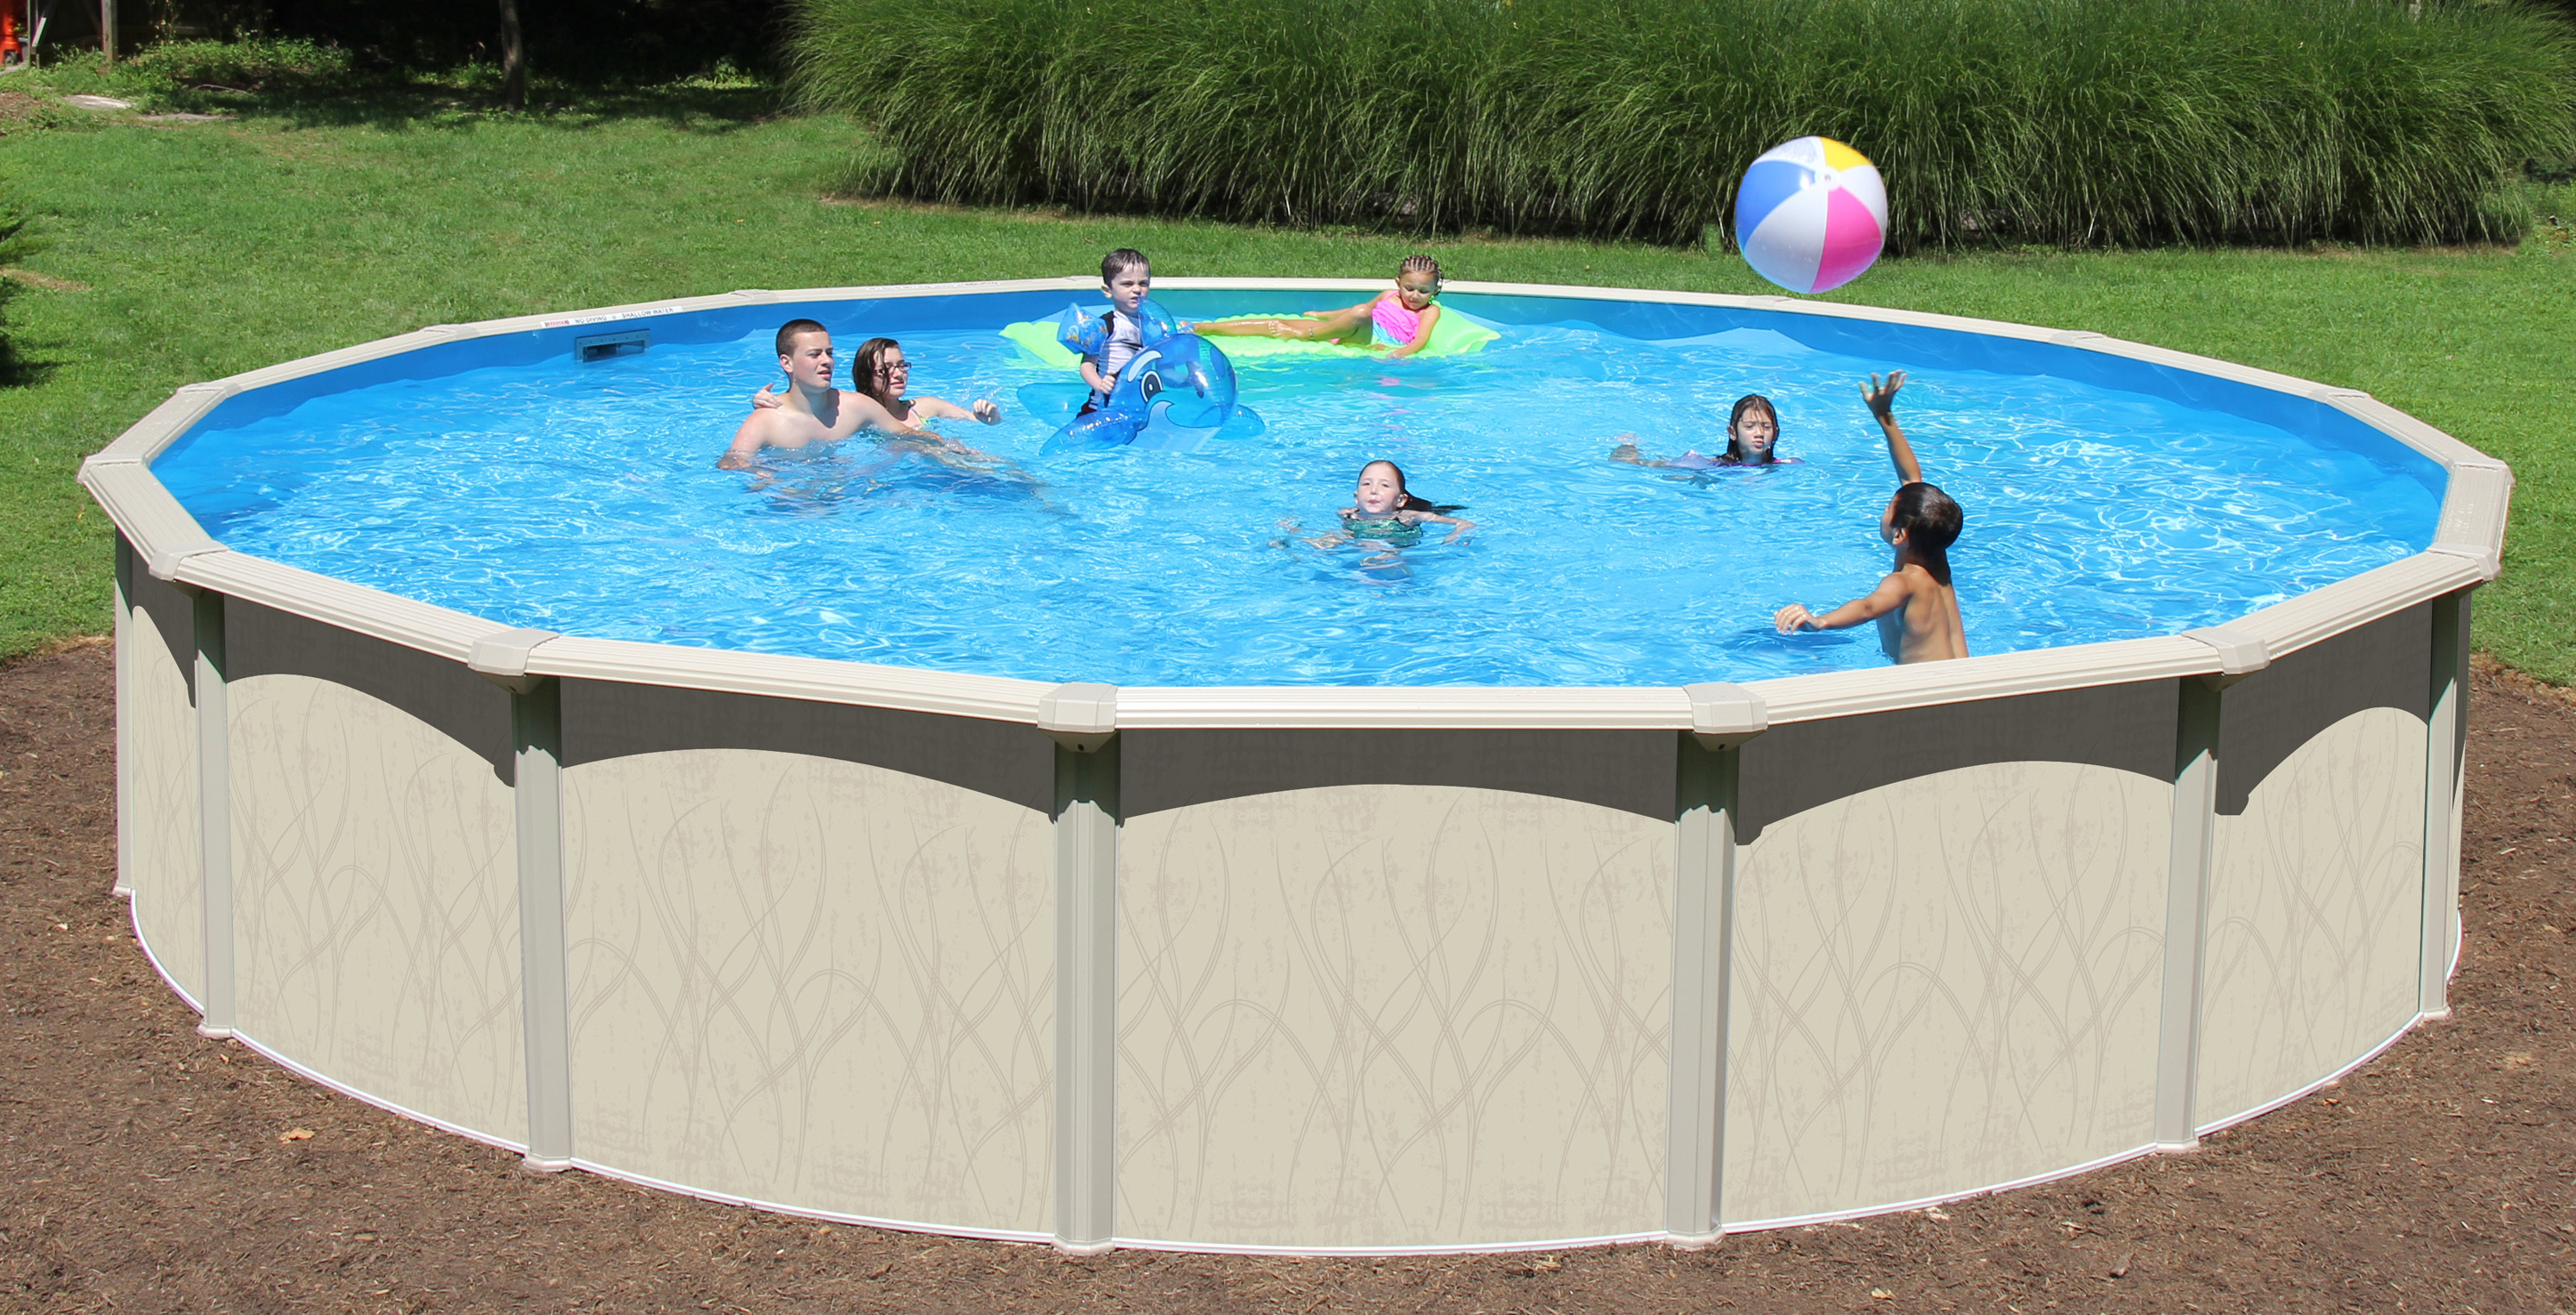 Sandfilteranlage Pool Toom Swimming Pool Xl 7000 Swimming Pool